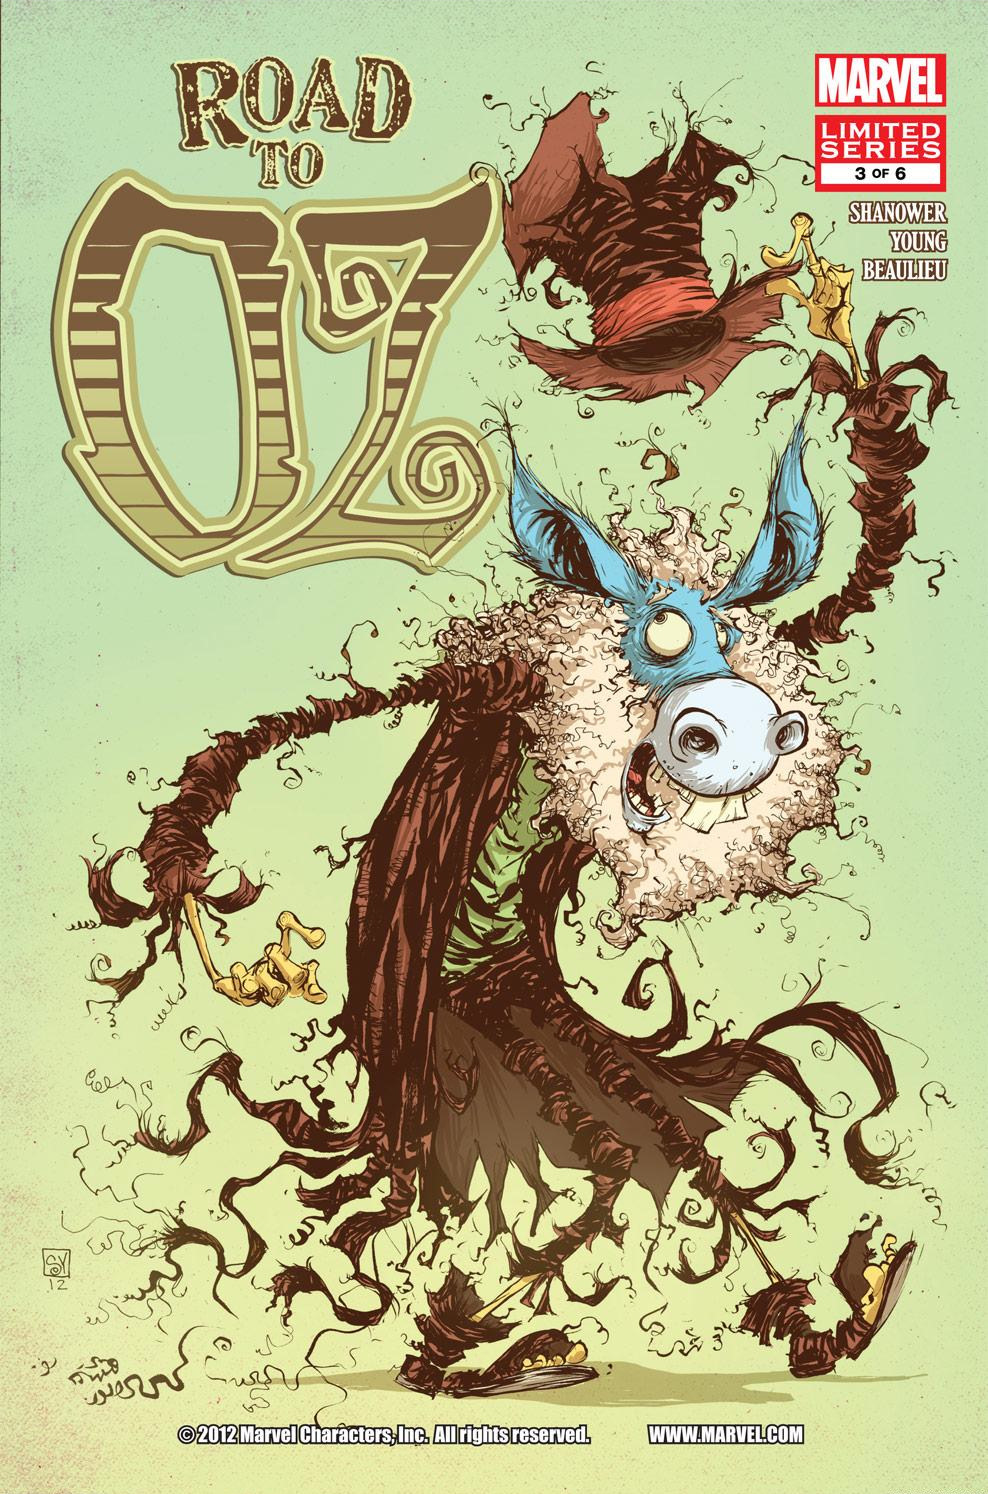 Road to Oz Vol 1 3